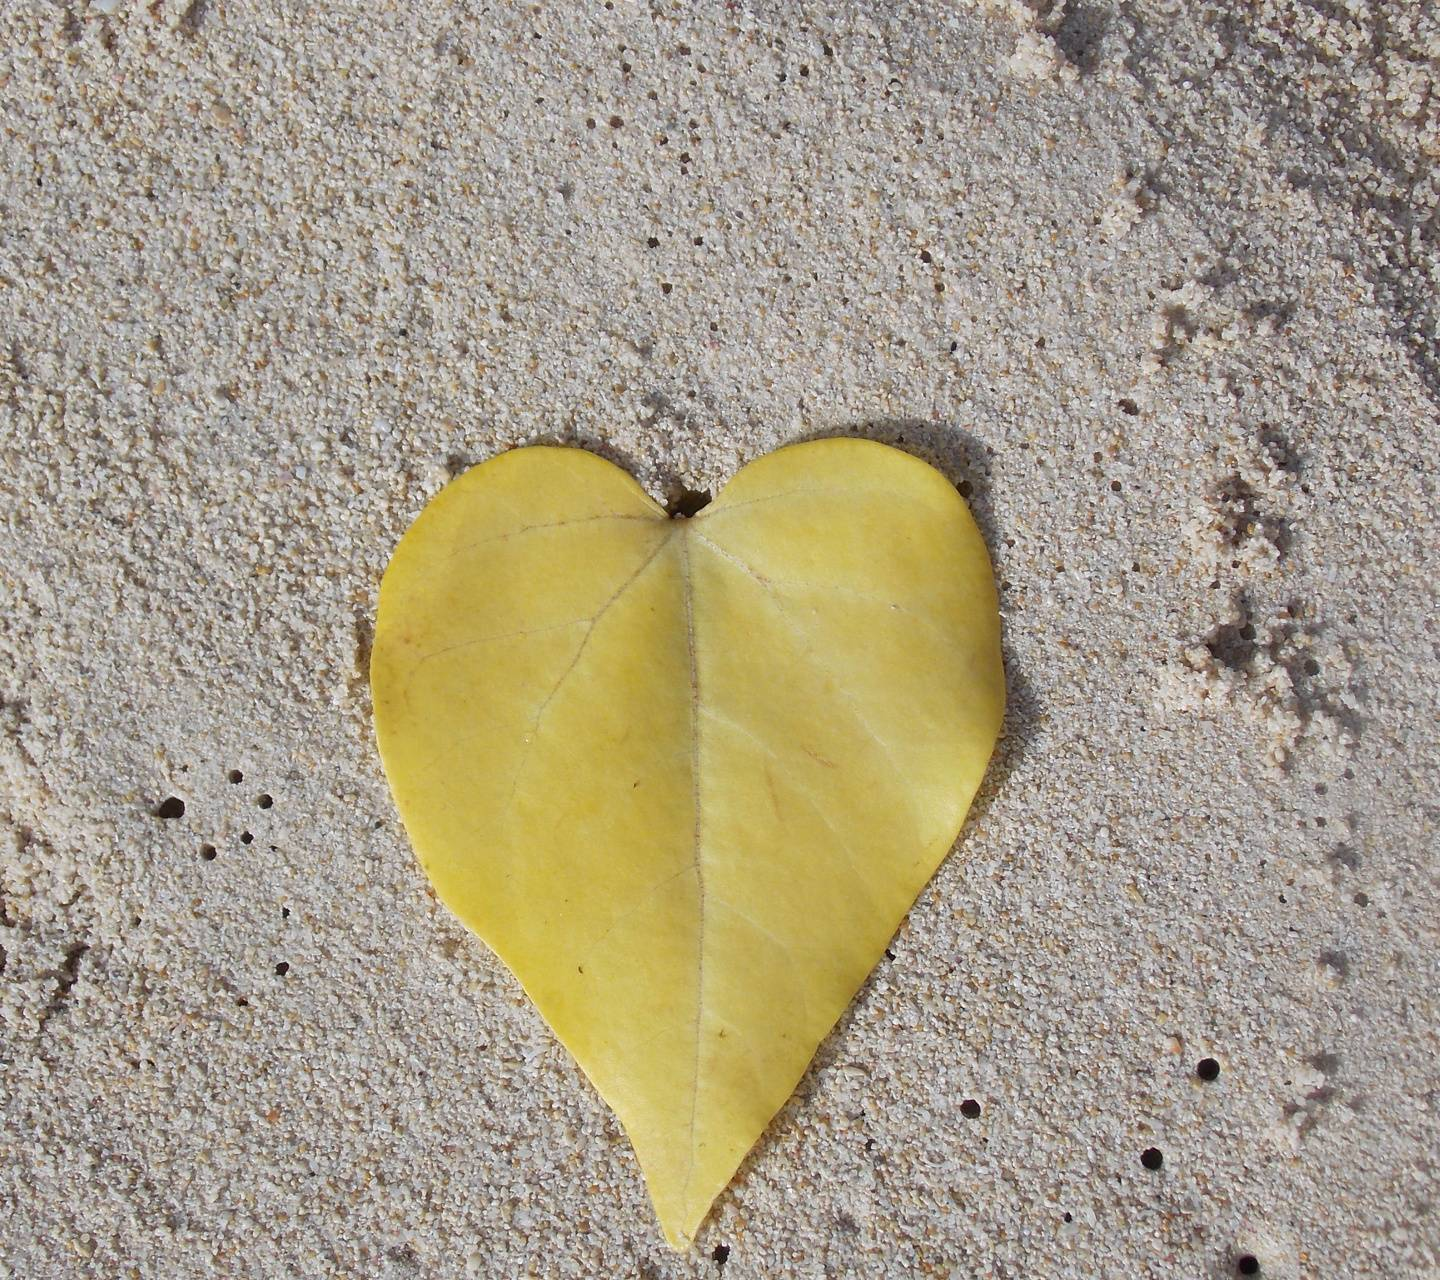 Leaf Shape of heart